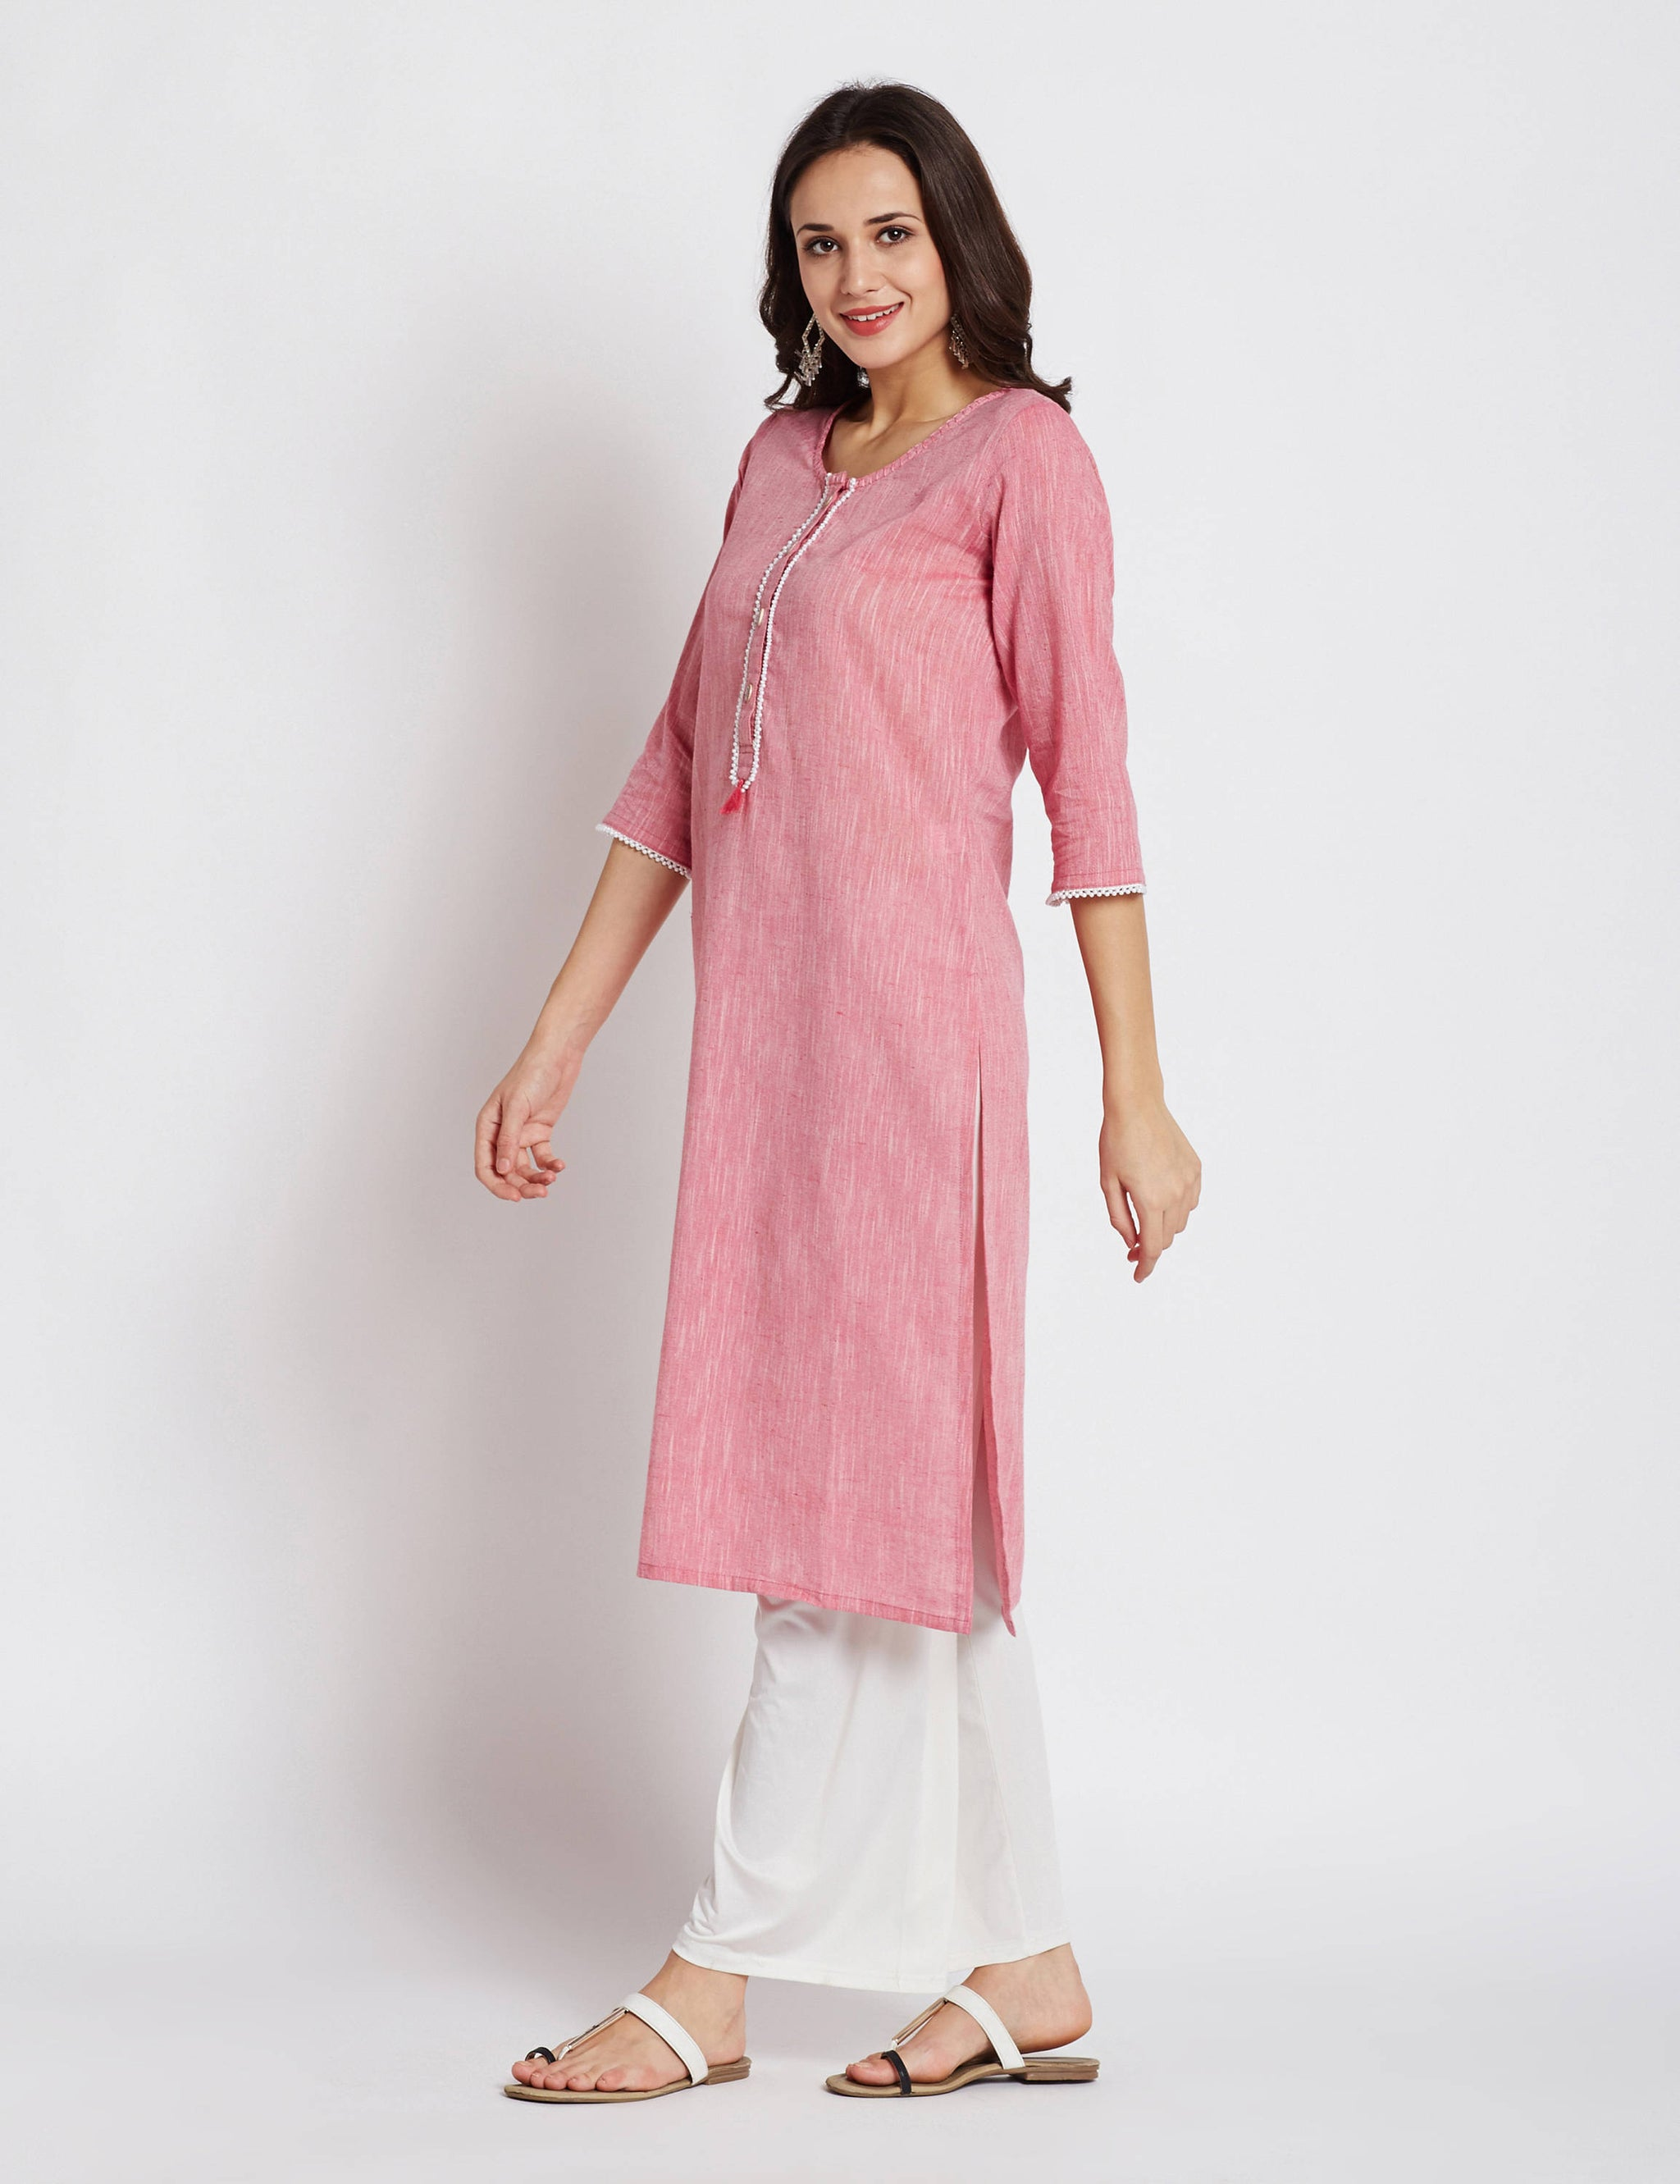 Indian ethnic long kurta with pocket in soft pink colour with beads border detailing